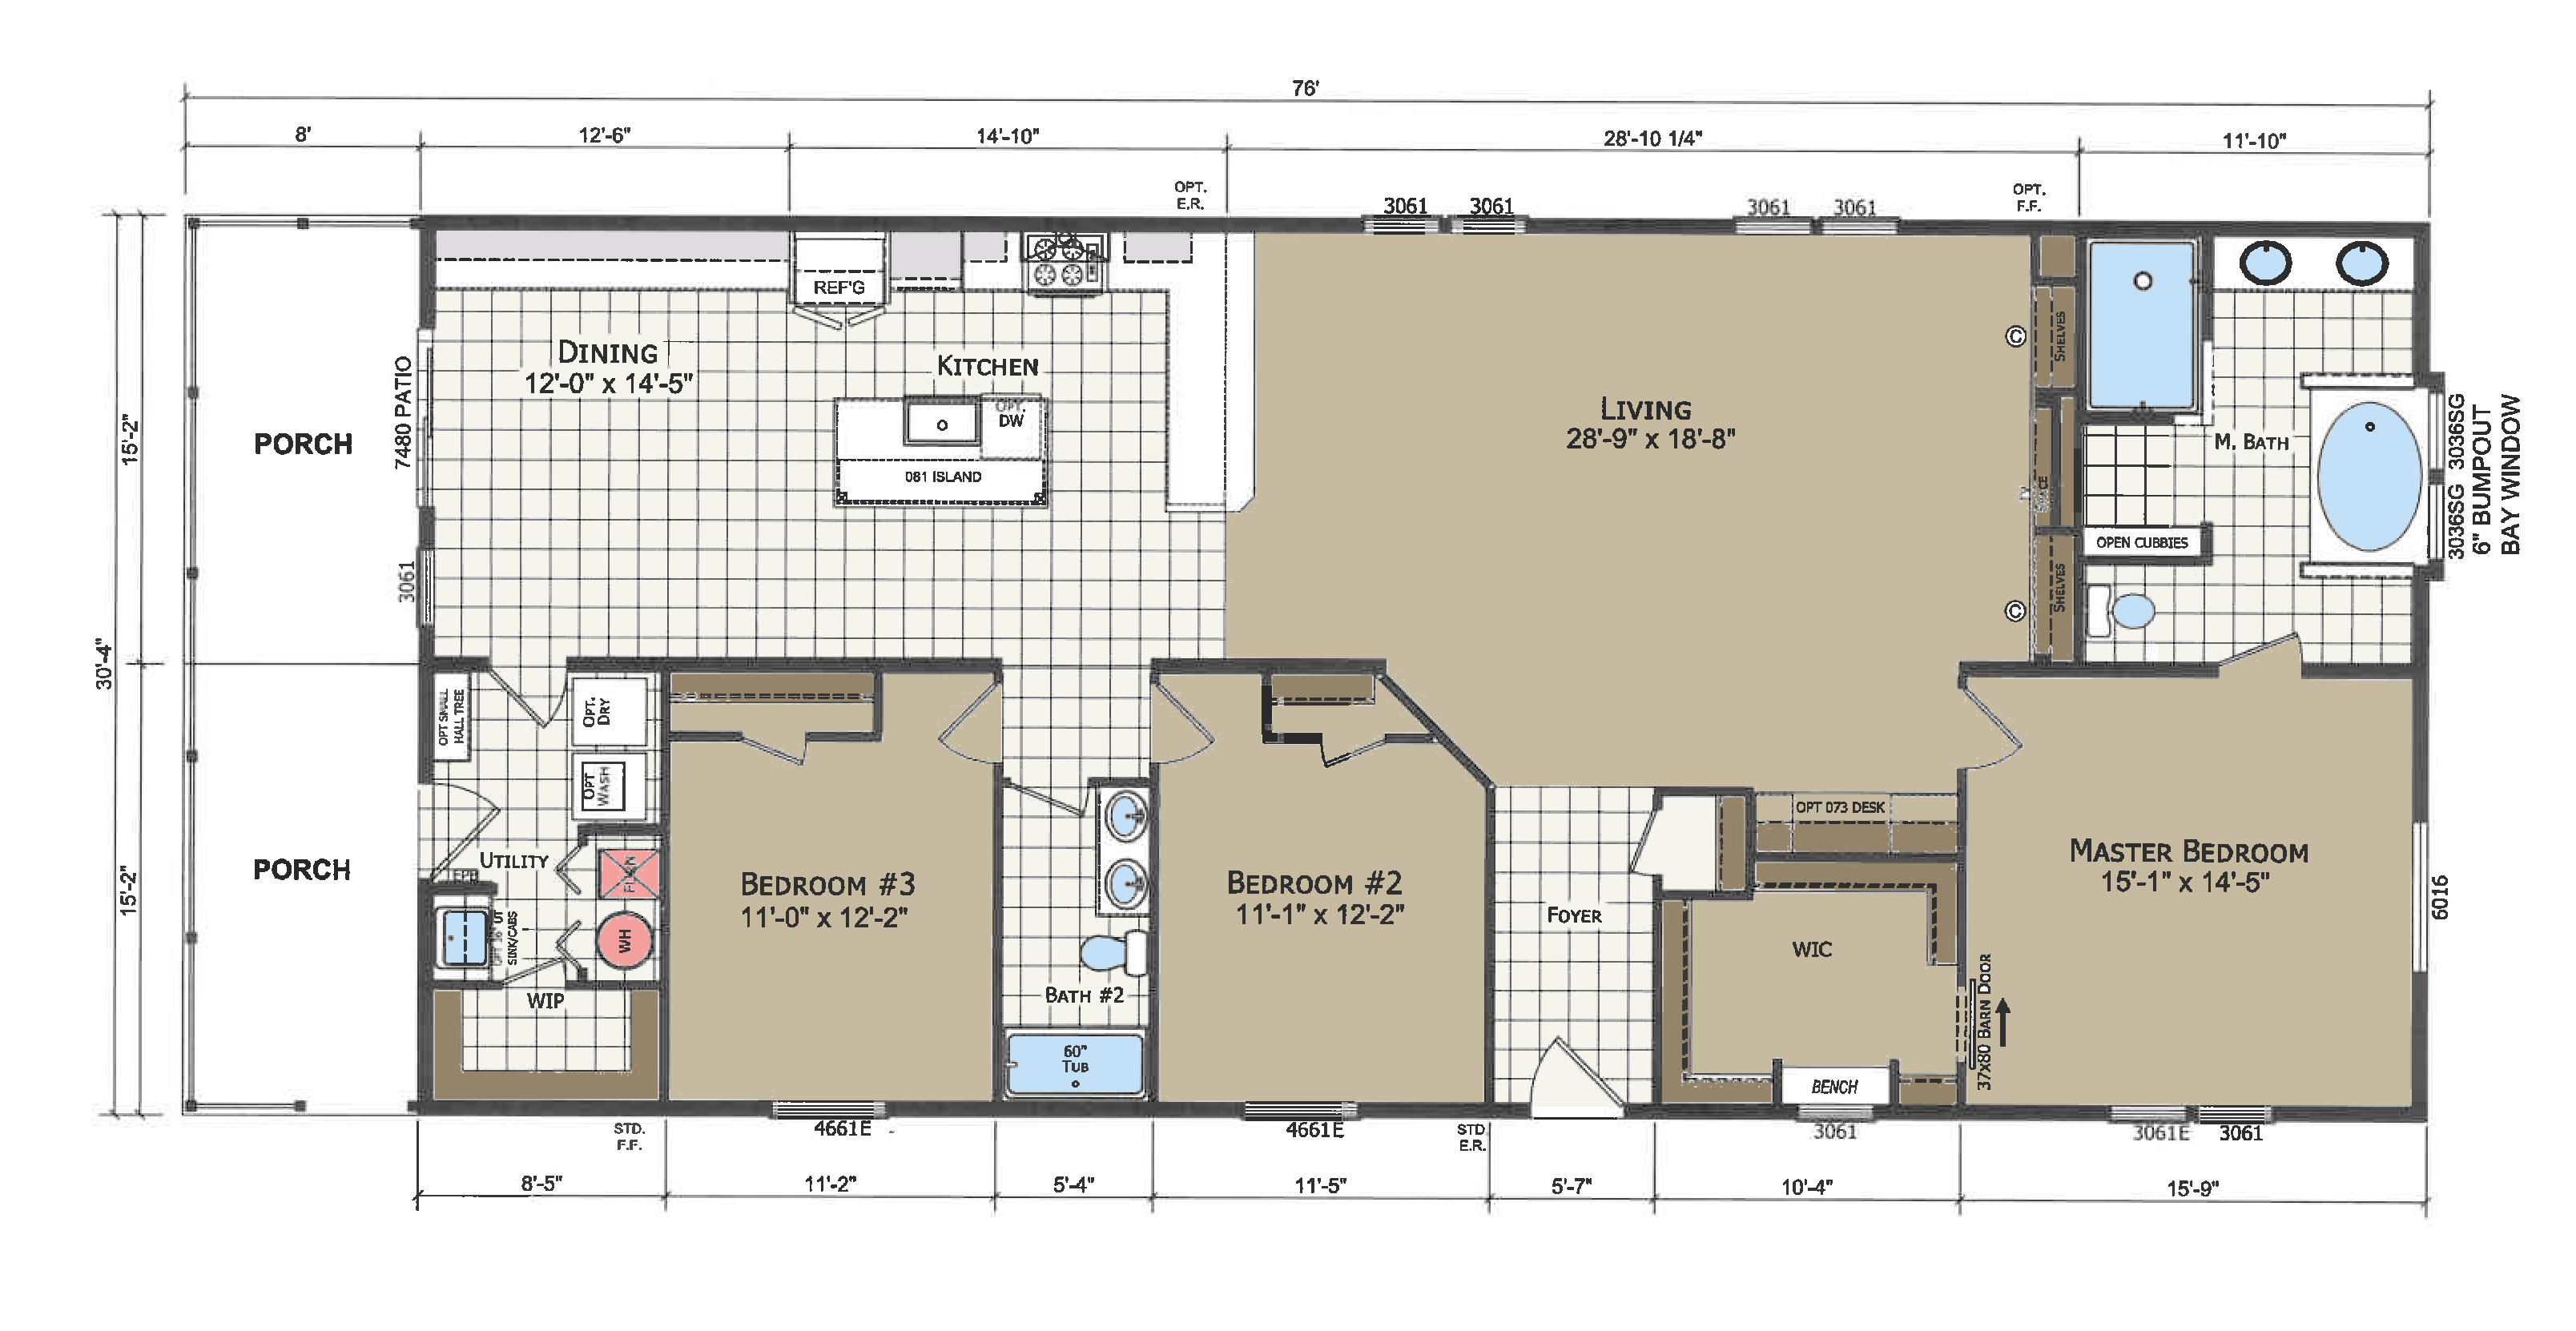 floorplan image for unit 371